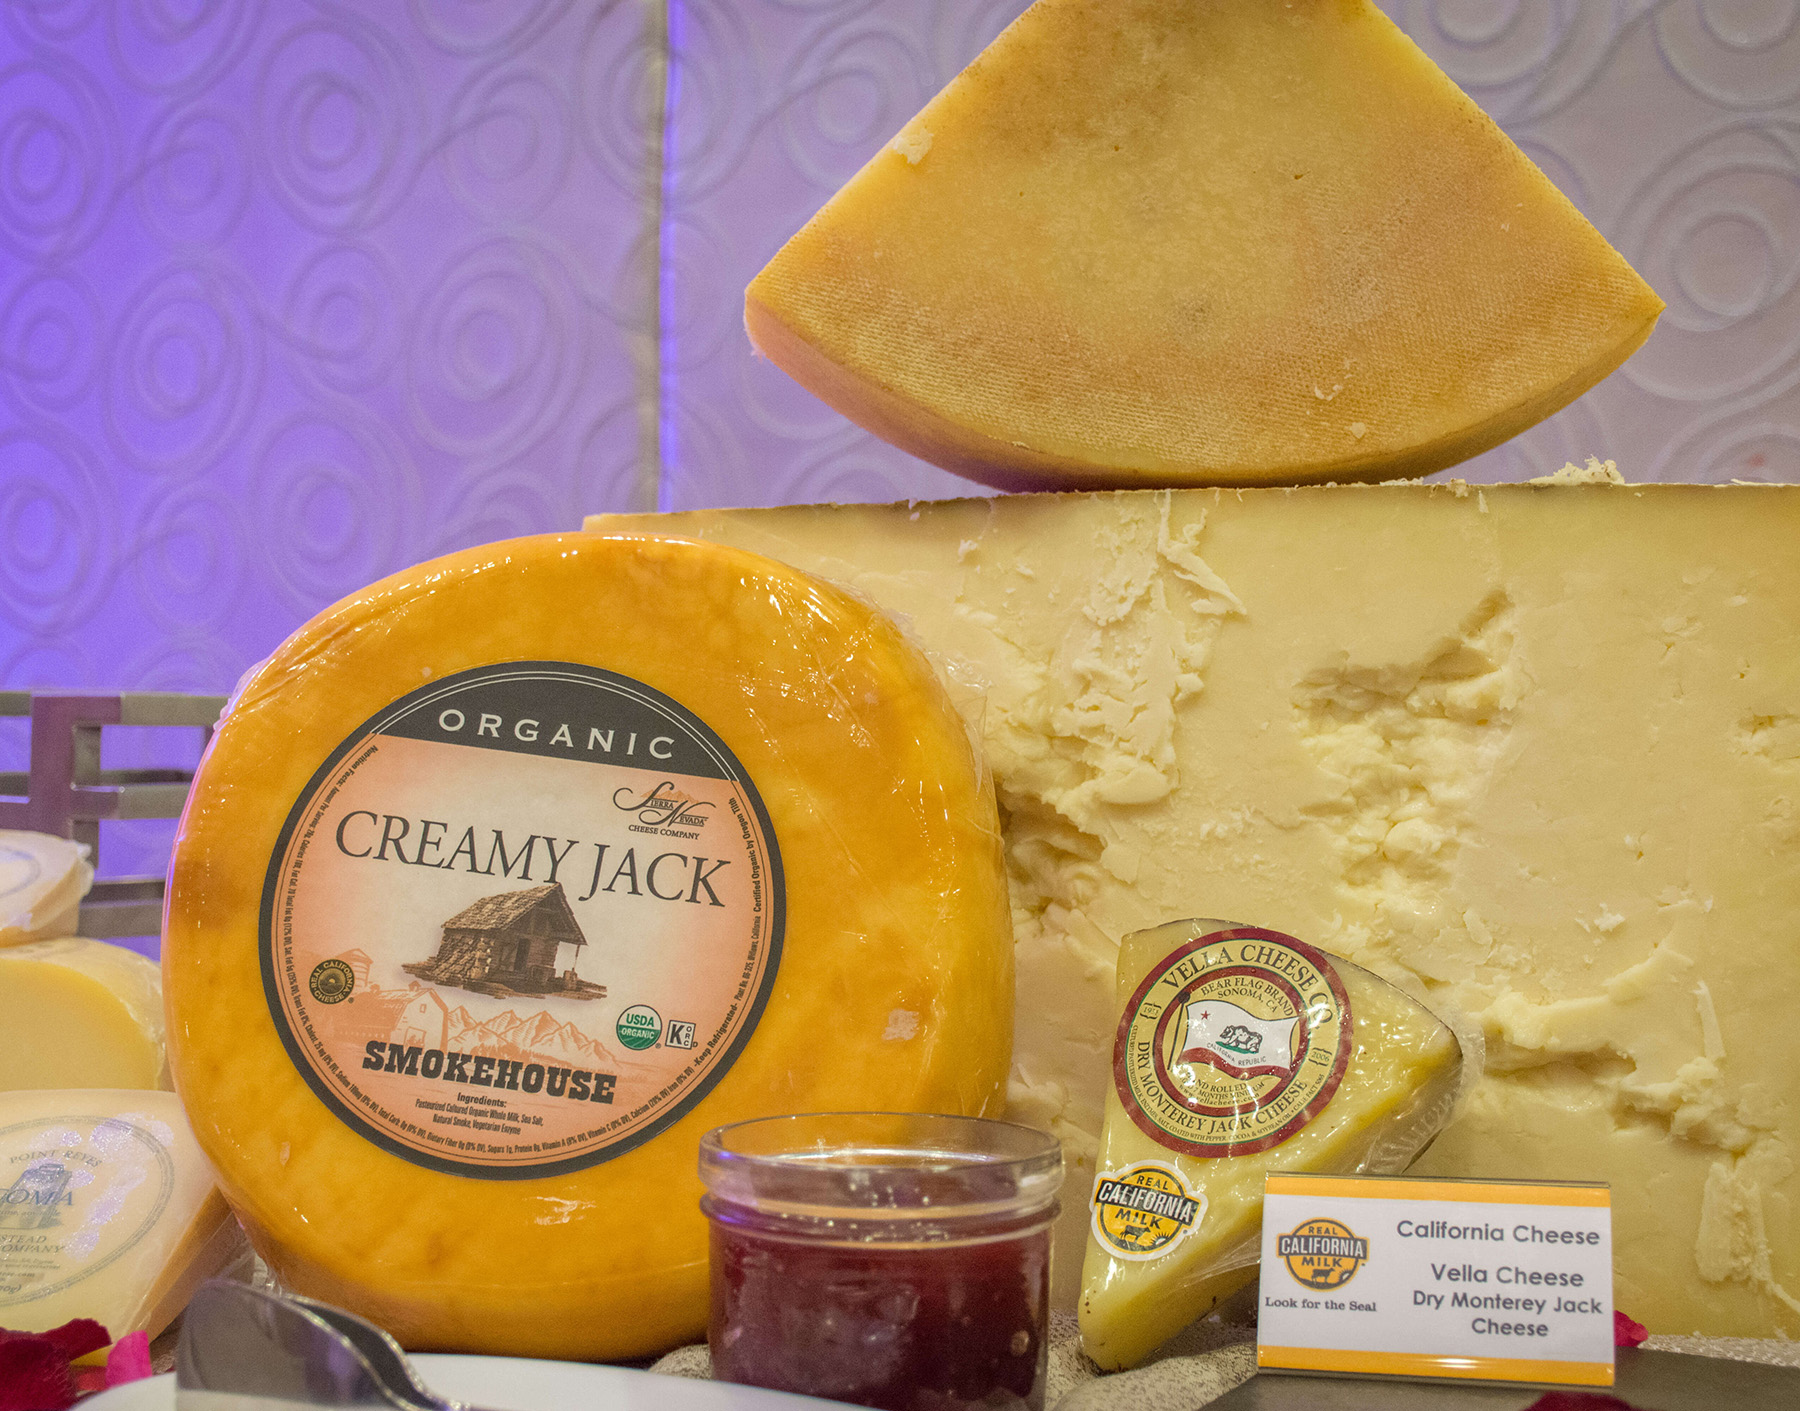 California Cheese product photo 2